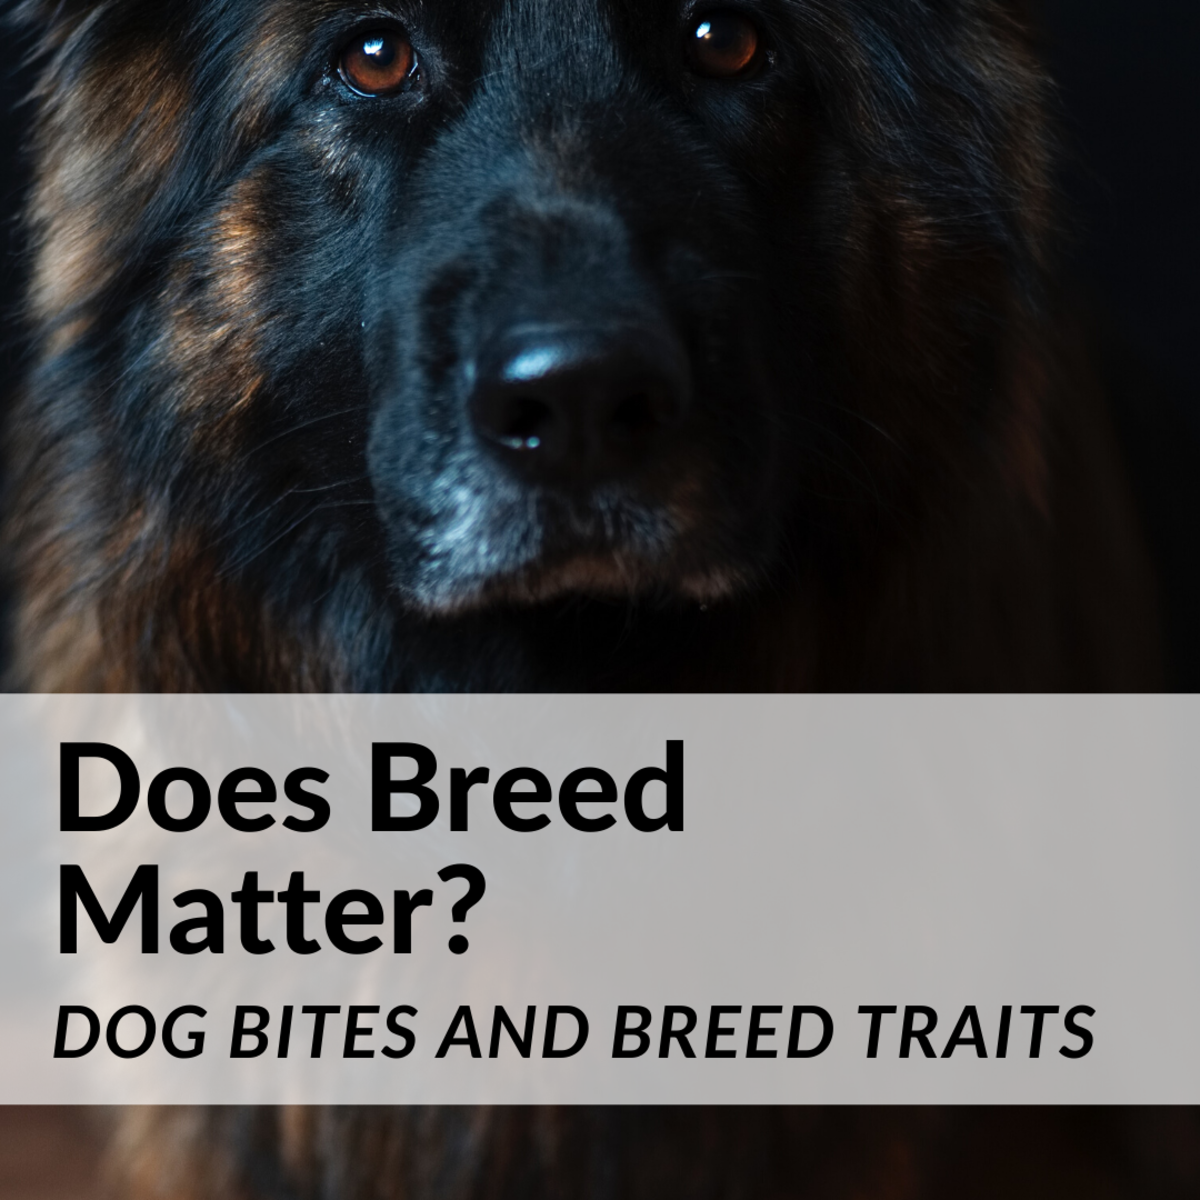 Why Dog Breed Matters